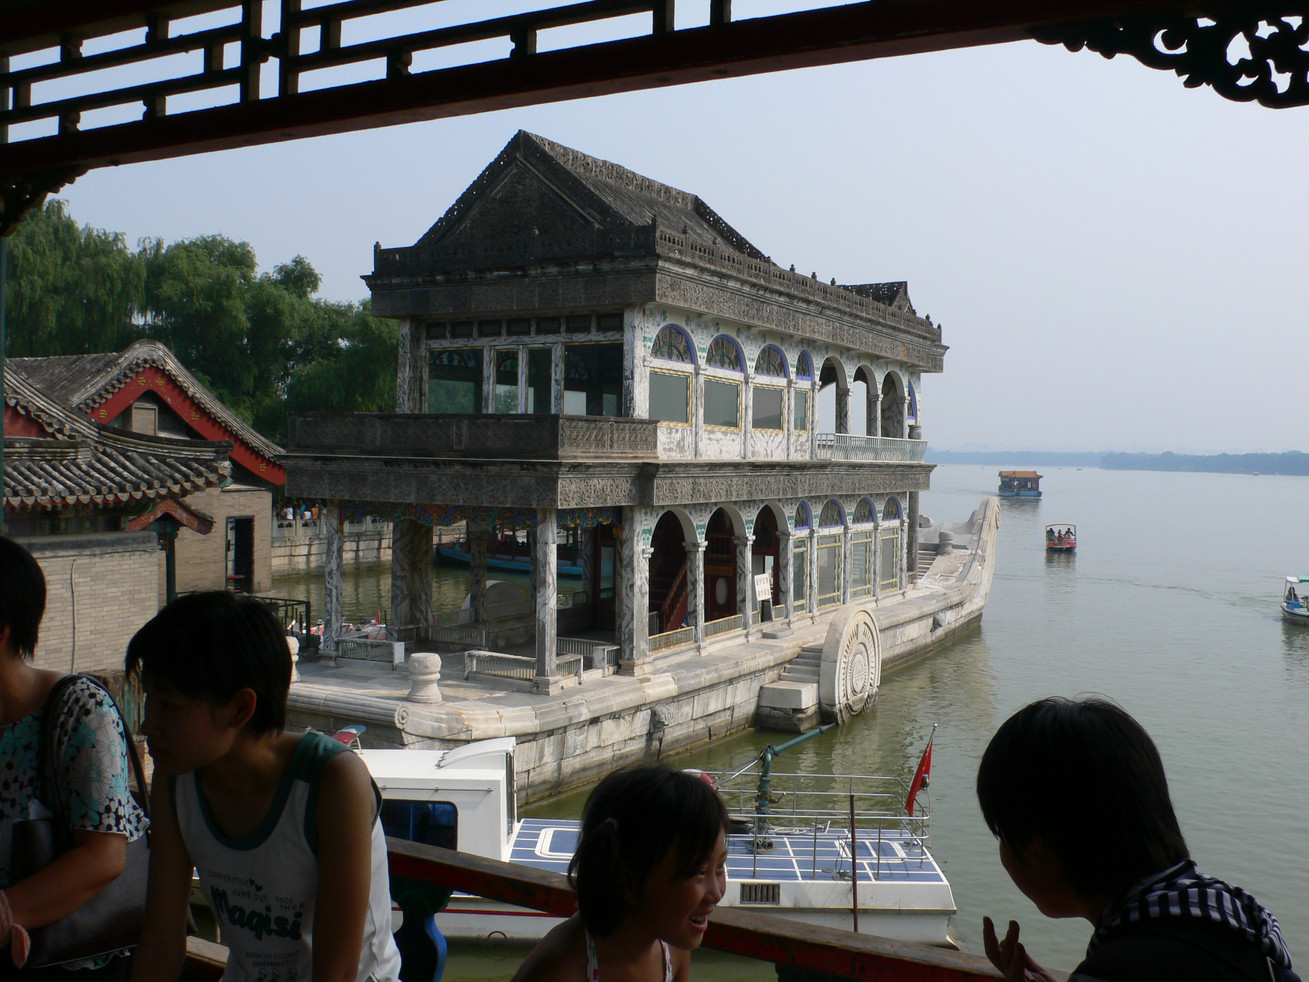 The Emperor's marble boat